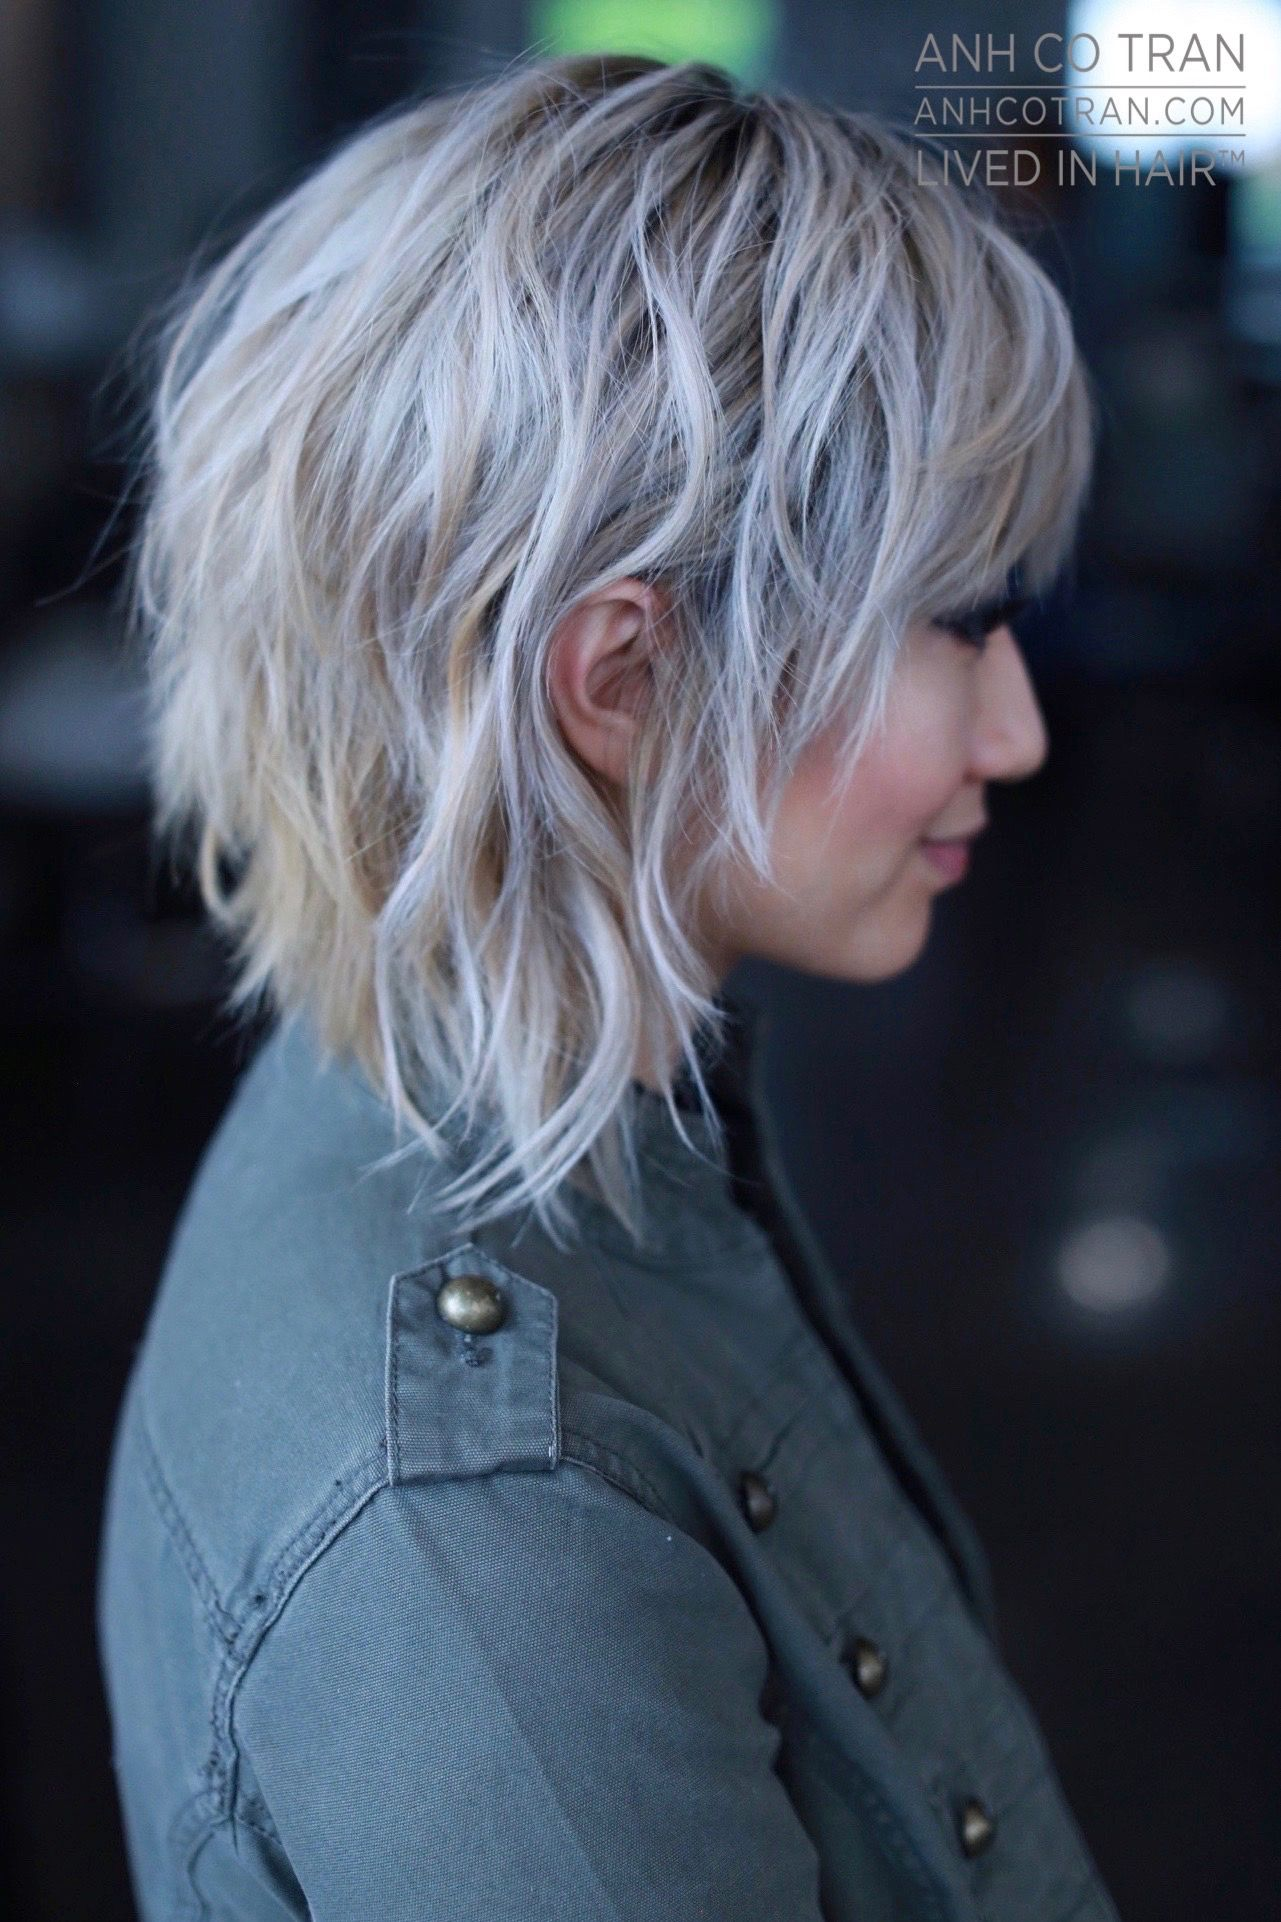 anh co tran (this! this is the one, just brunette) | hairstyles